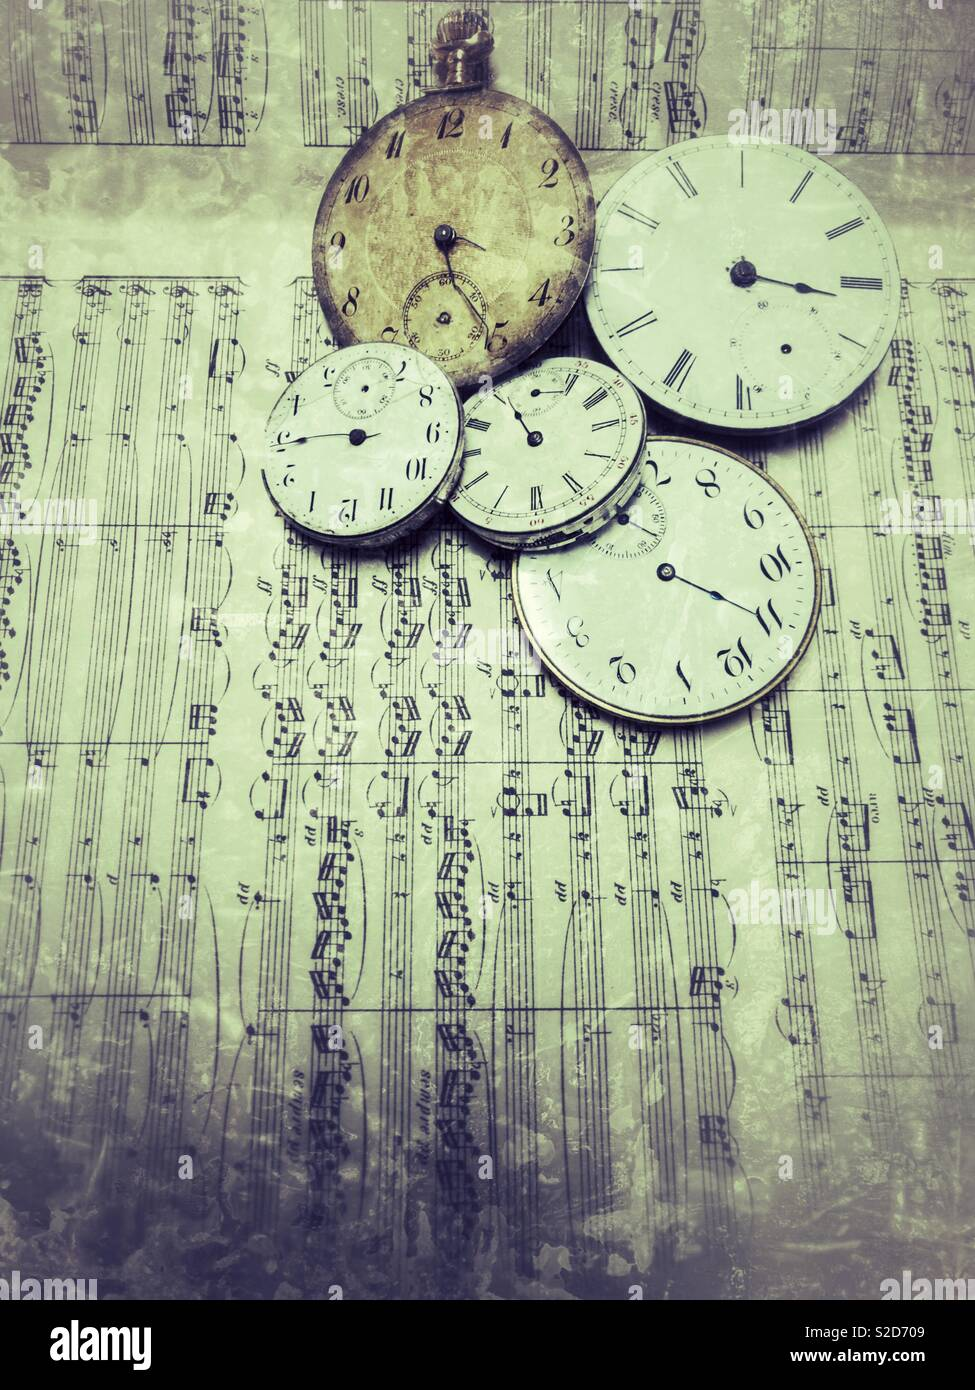 Times past. - Stock Image